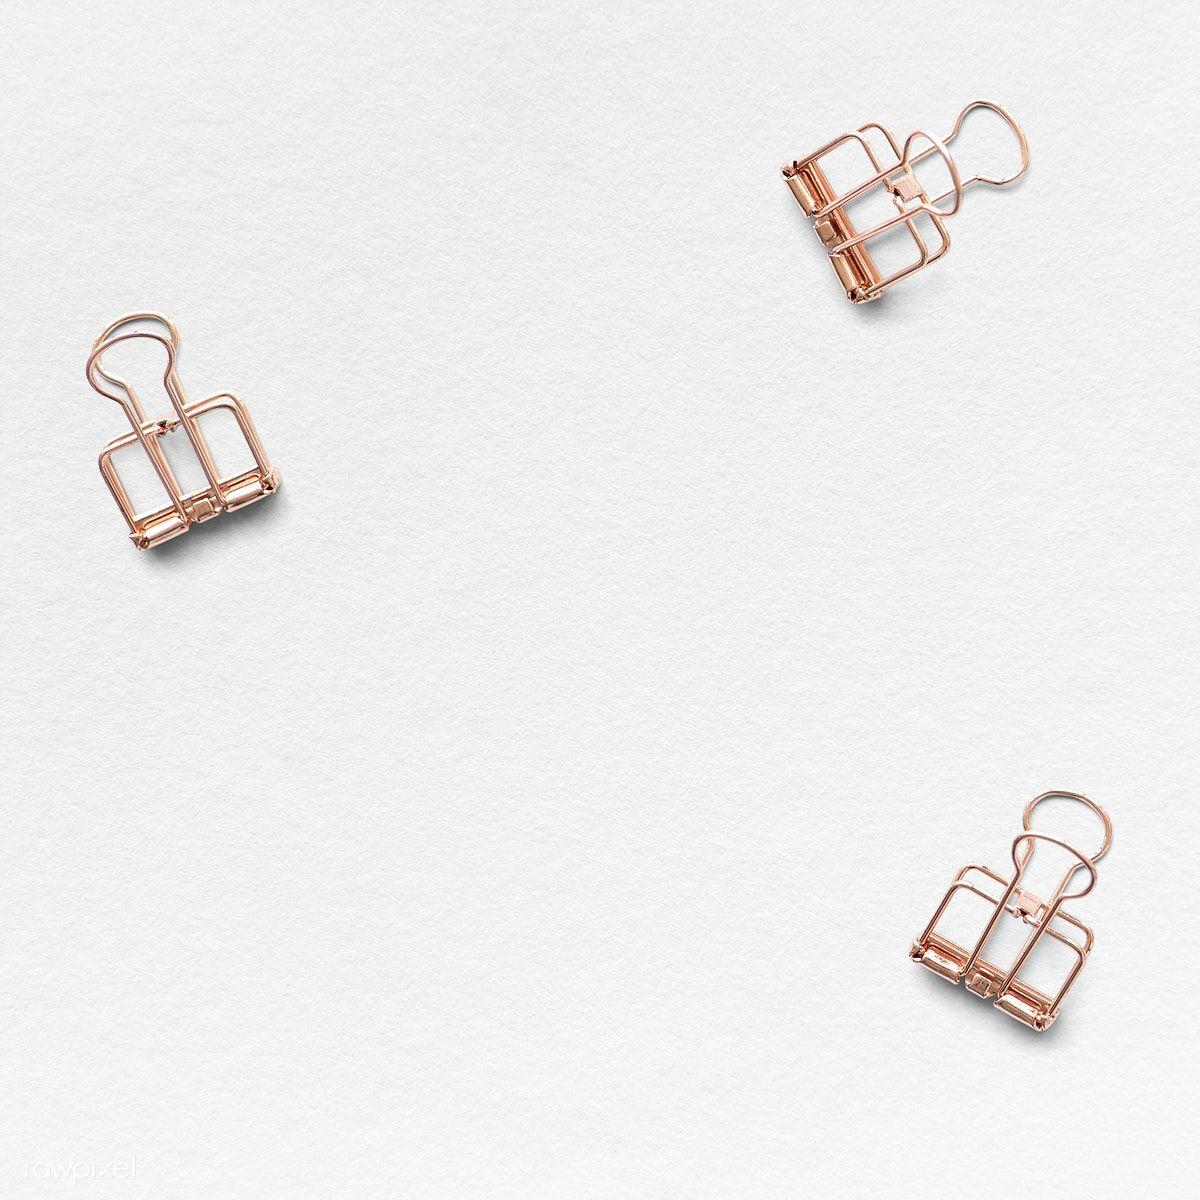 Download Premium Psd Of Rose Gold Paperclip Background Design 1202174 Paper Clip Background Design Rose Gold